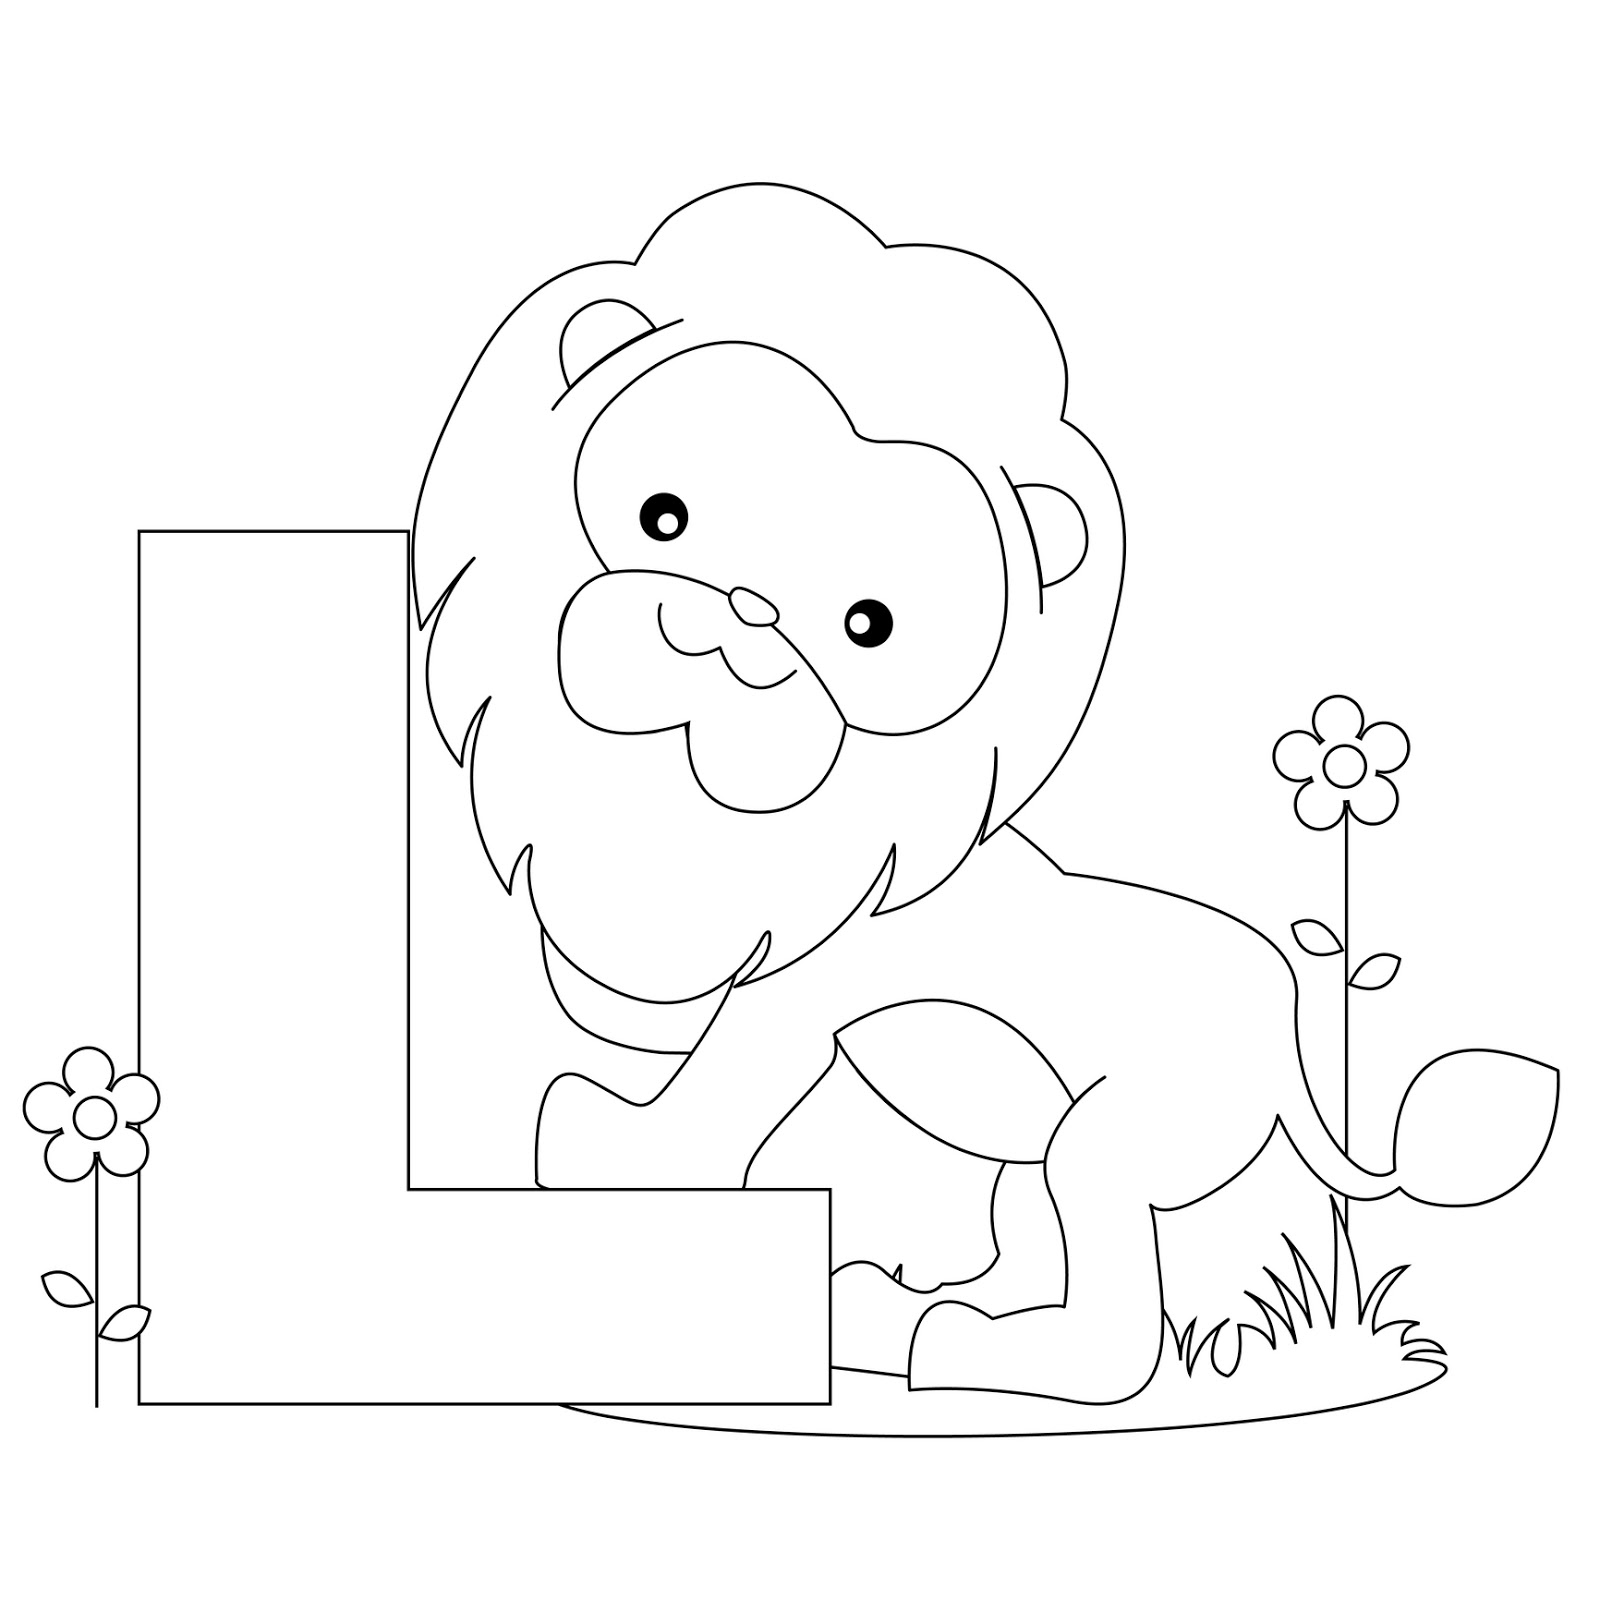 Free Letter A Coloring Pages At Getdrawings